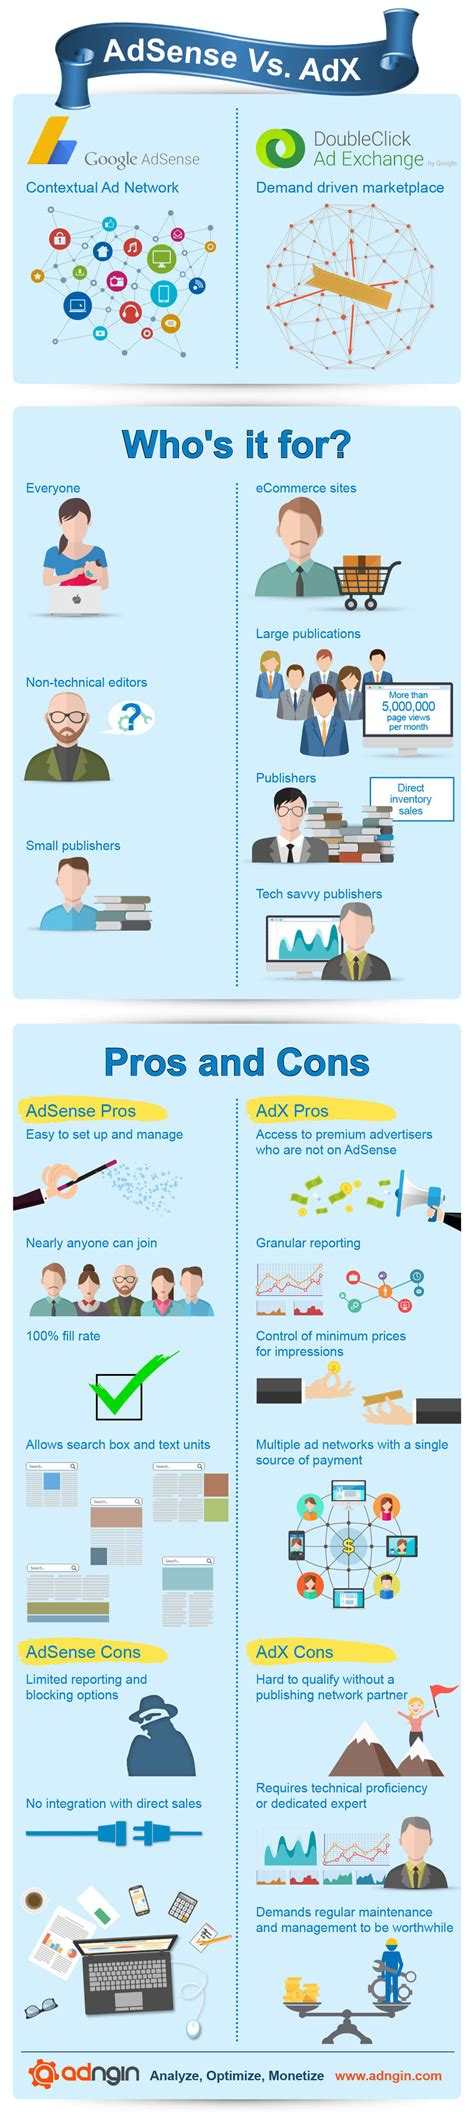 adsense how it works infographic adx vs adsense which will make you more